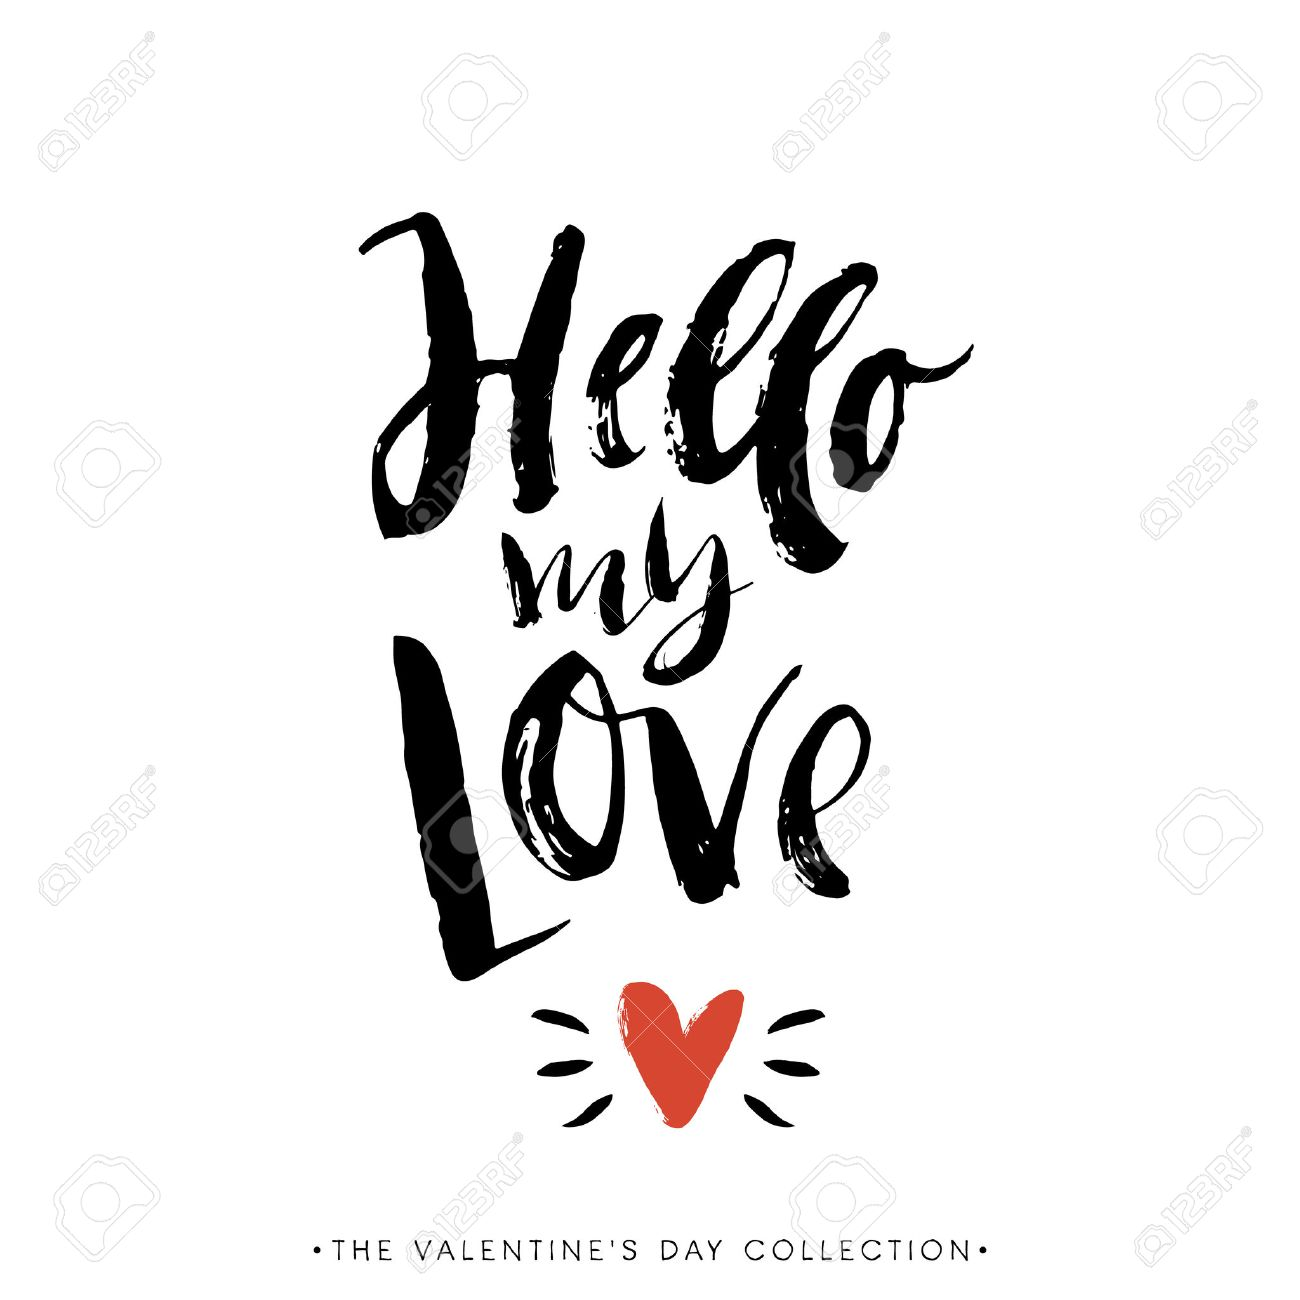 hello my love valentines day greeting card with calligraphy